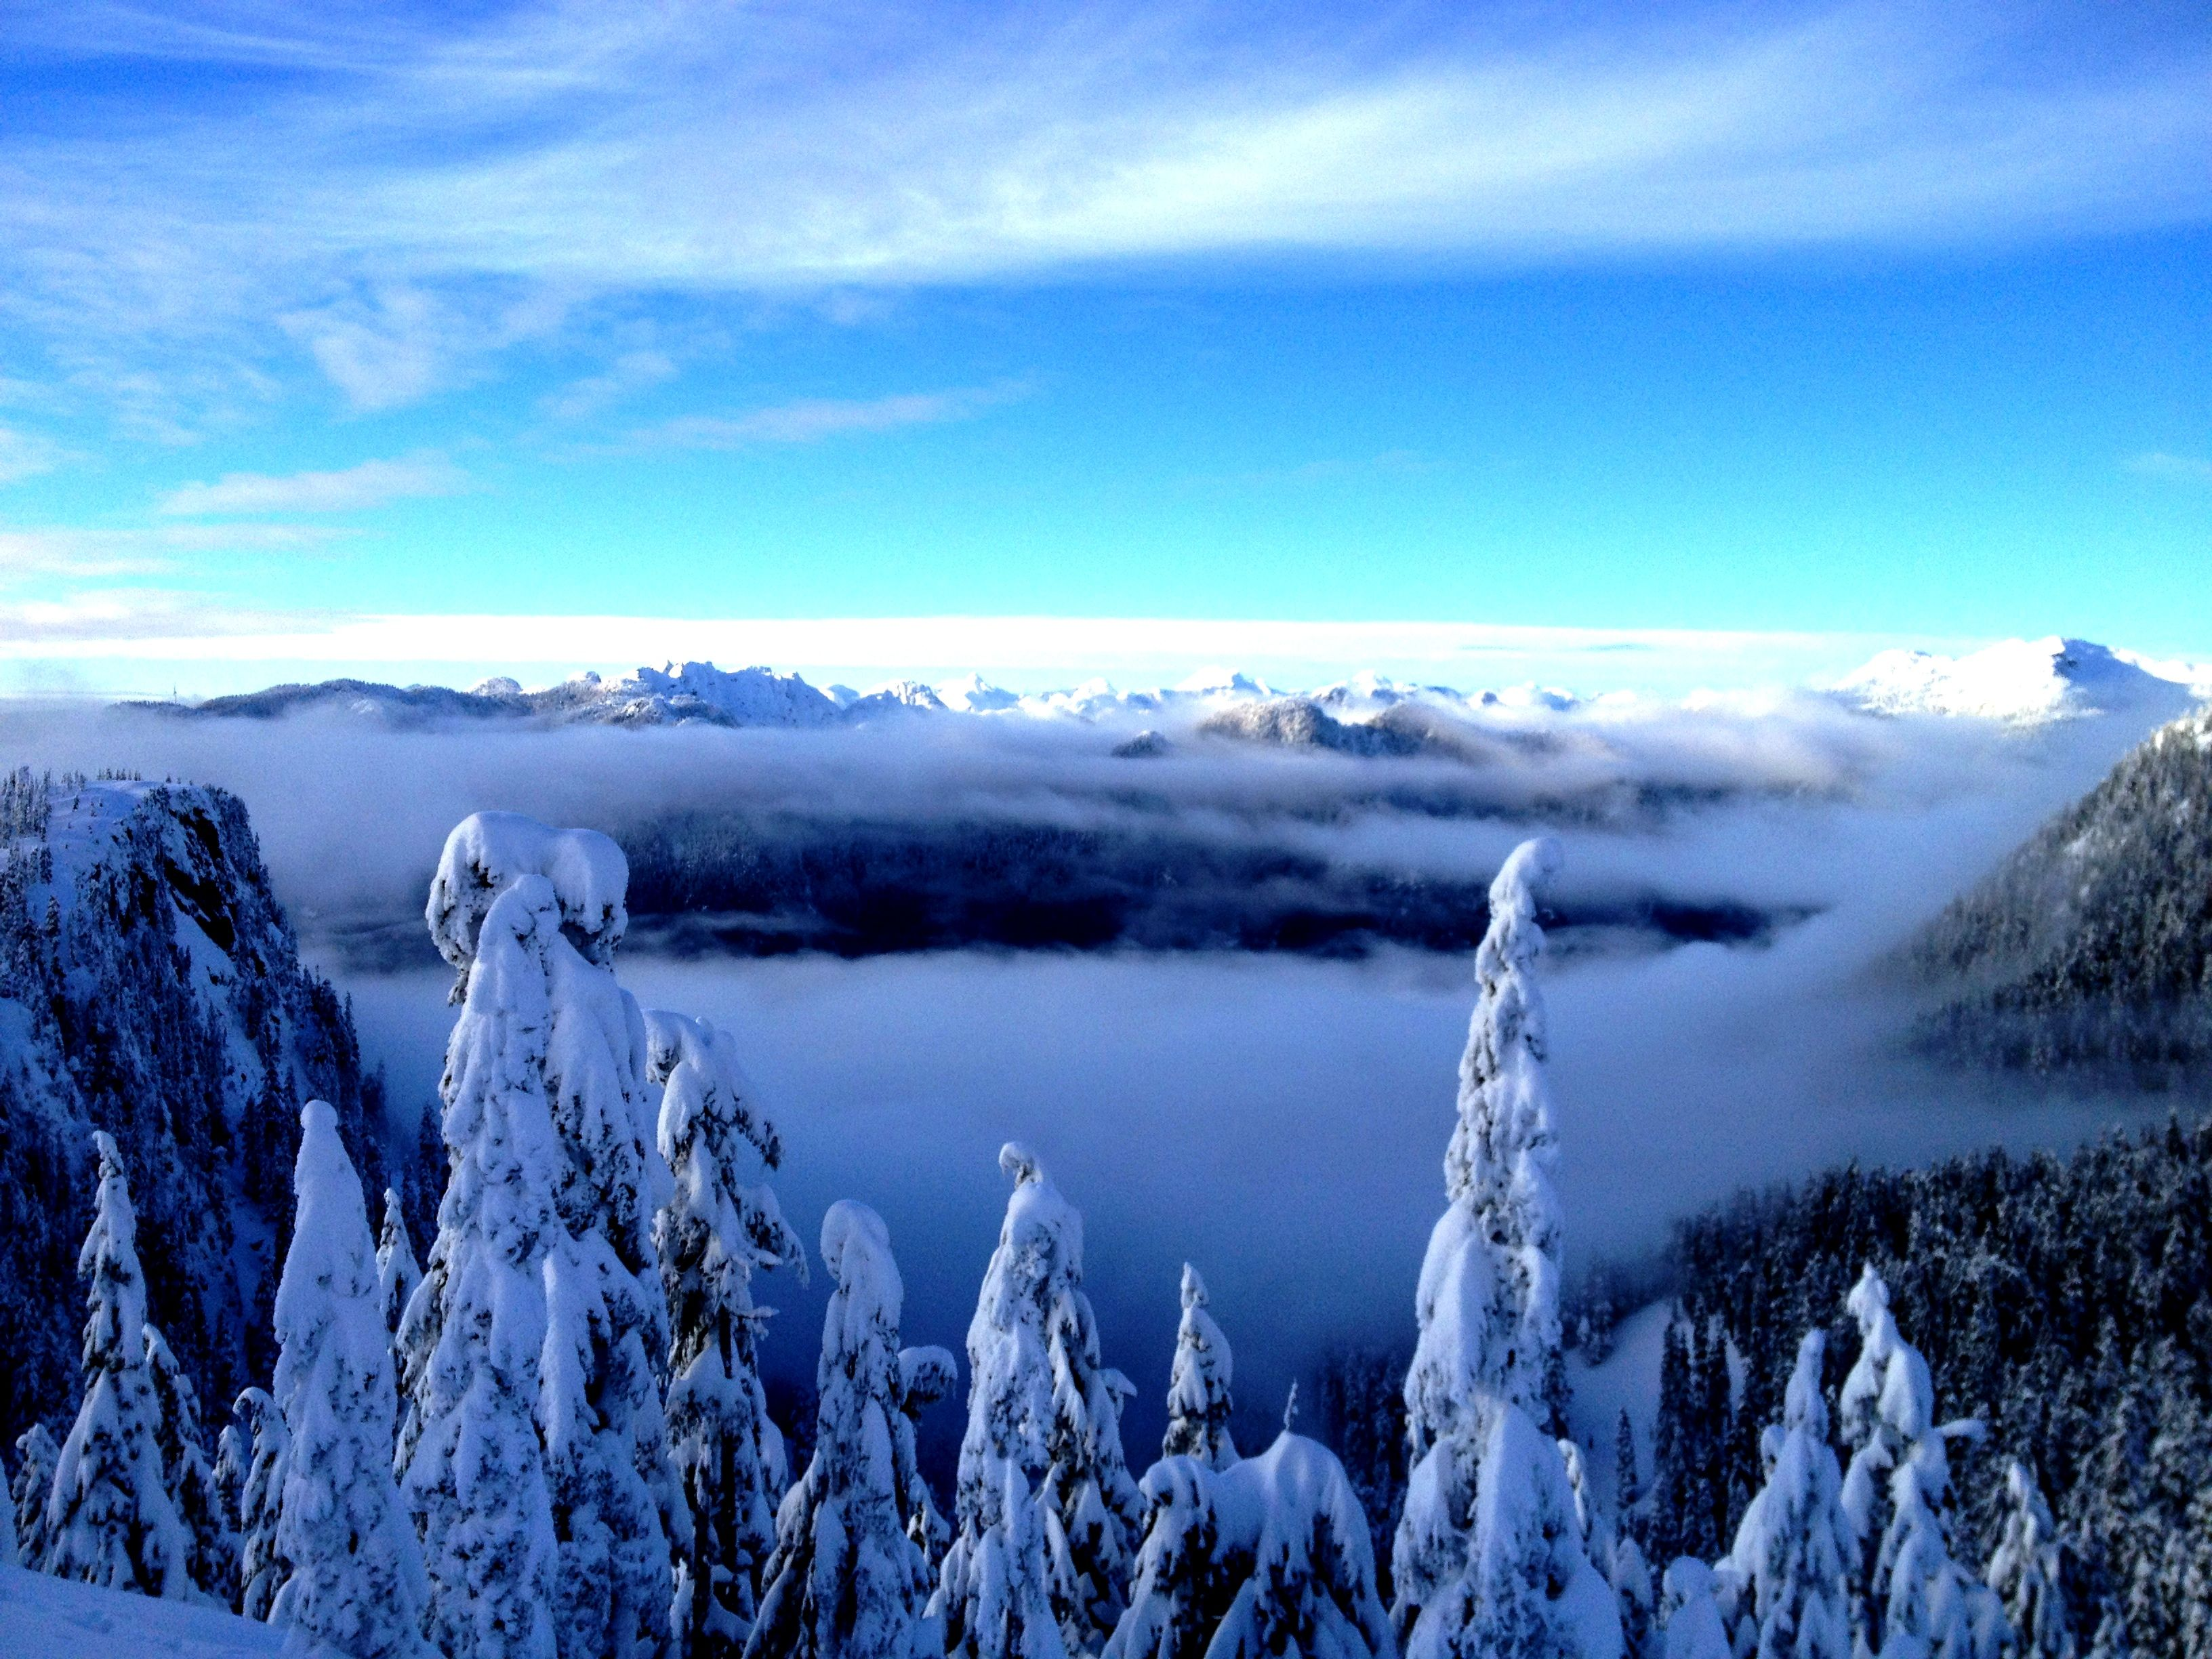 Baden powell trail on mt. Mt Seymour North Vancouver Vancouver Hotels North Vancouver Best Places To Live